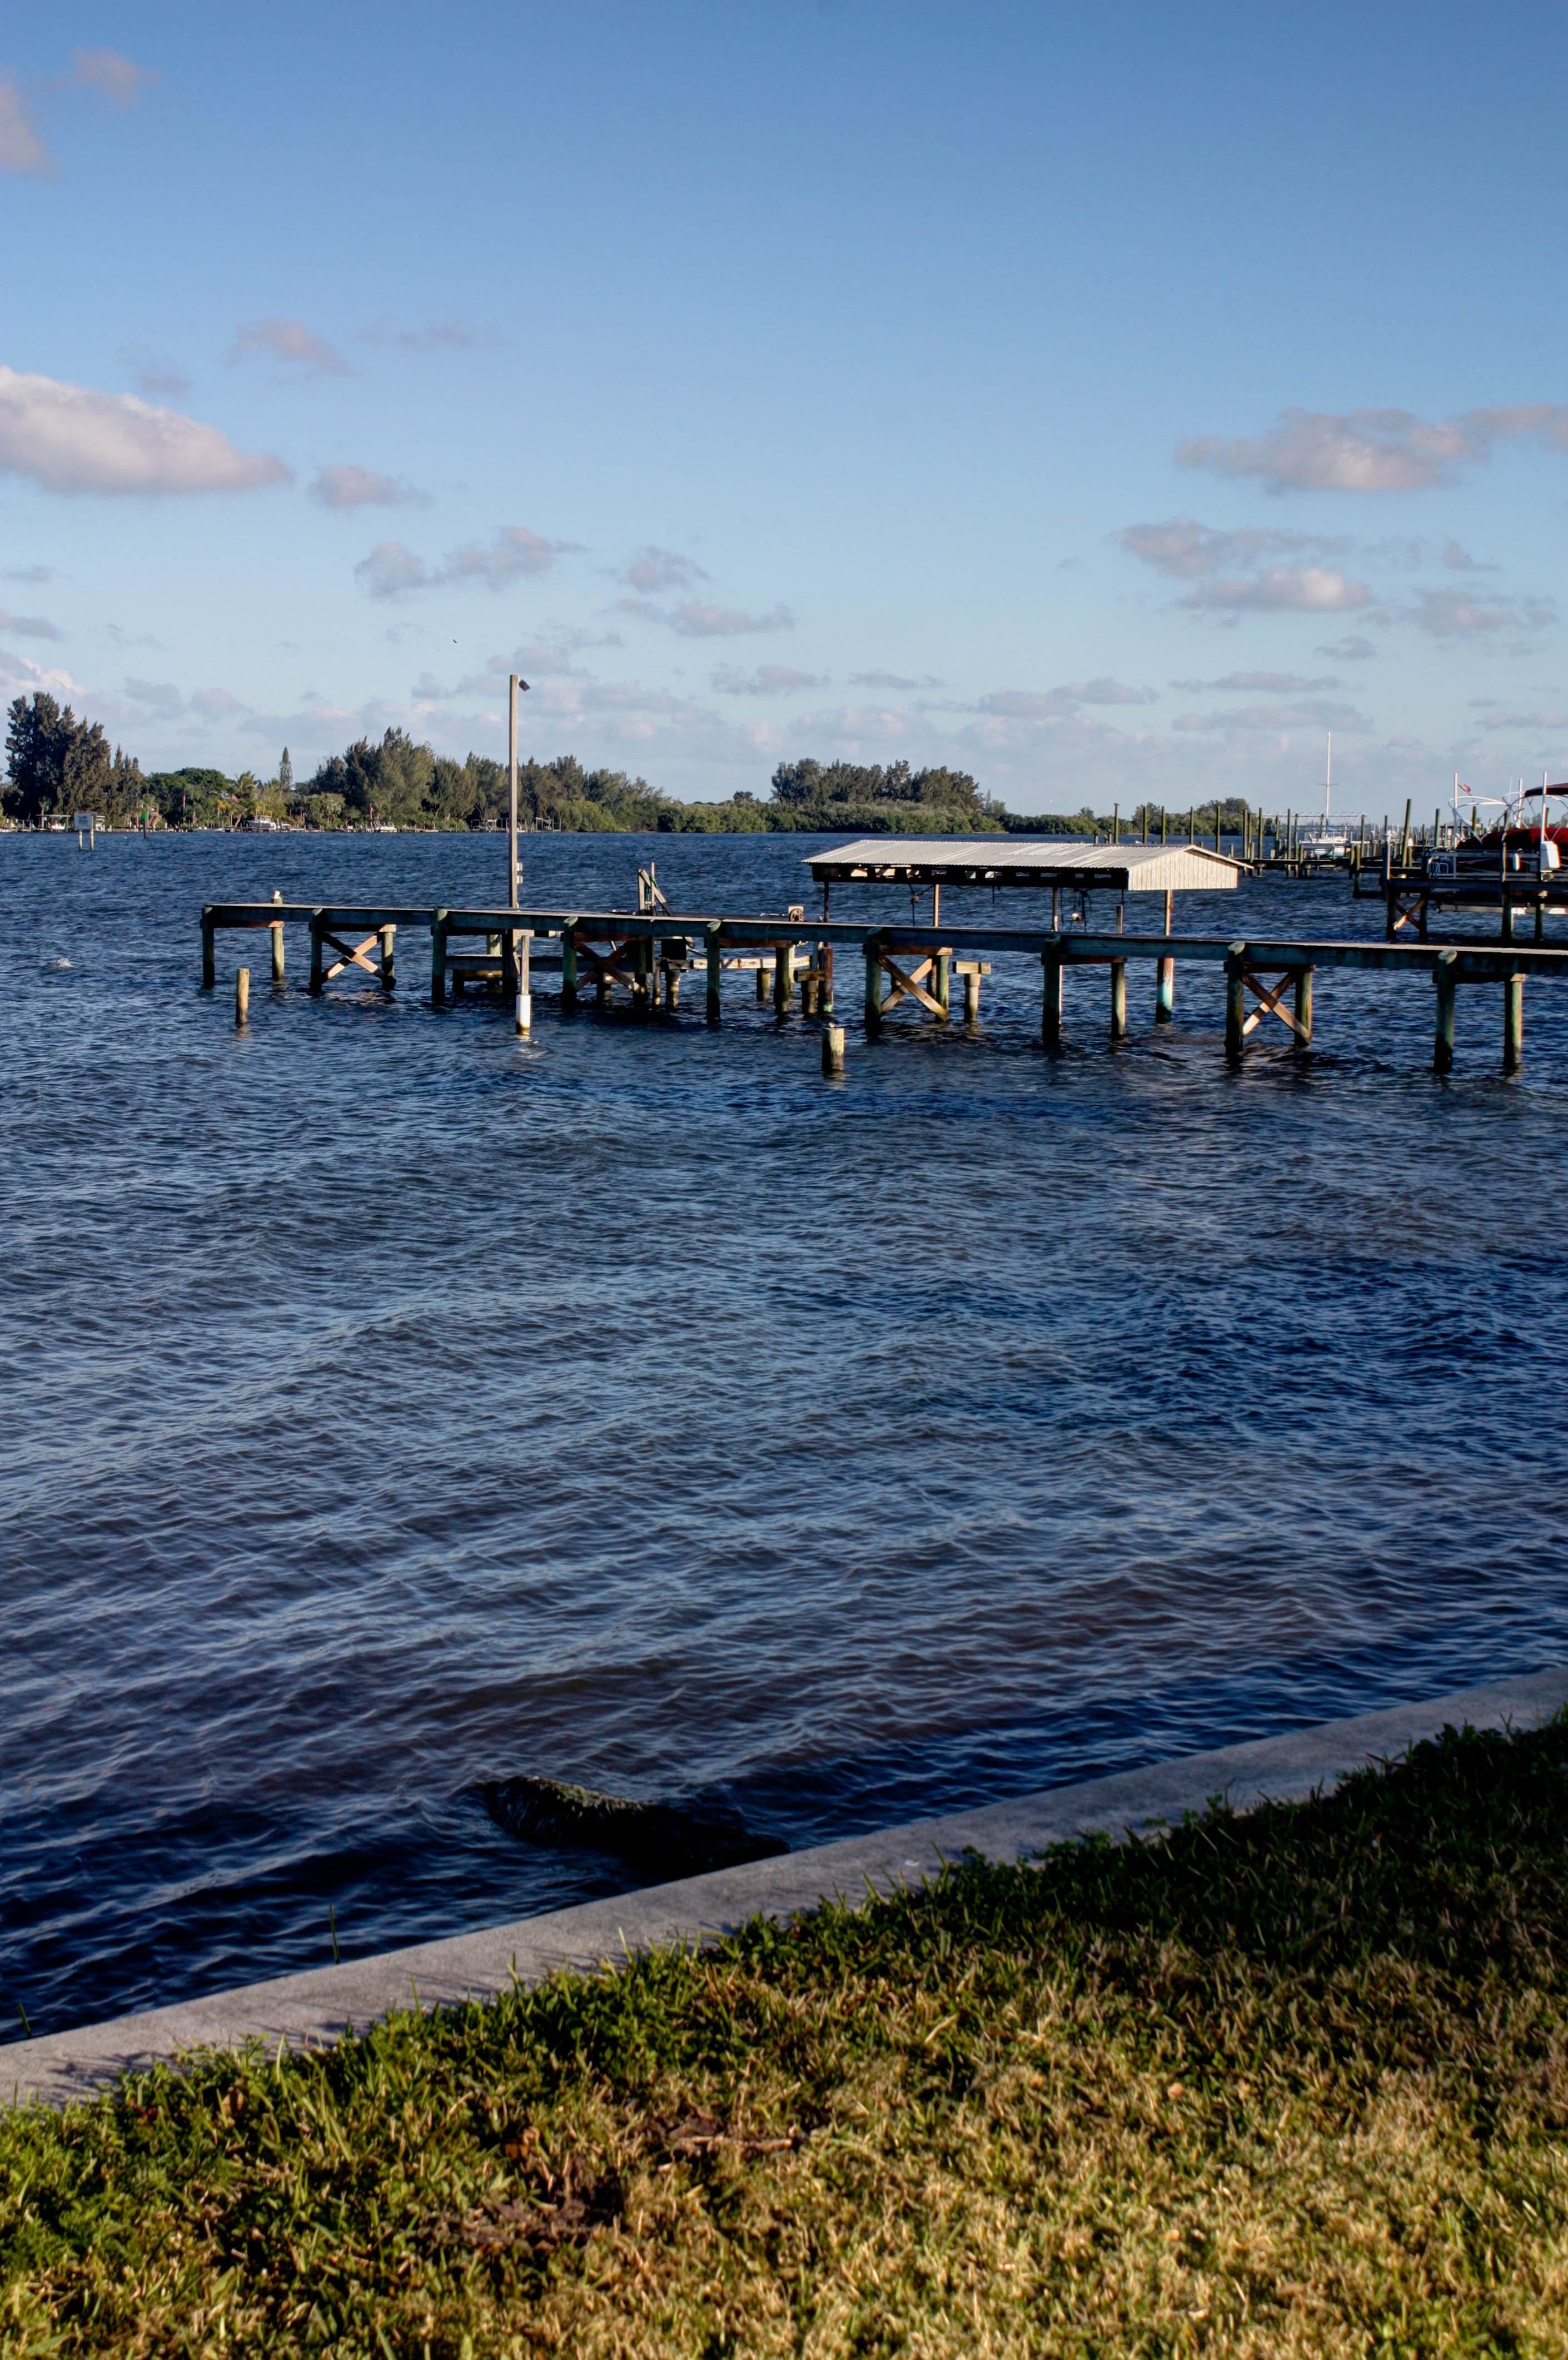 palm bay Zillow has 2,164 homes for sale in palm bay fl view listing photos, review sales history, and use our detailed real estate filters to find the perfect place.